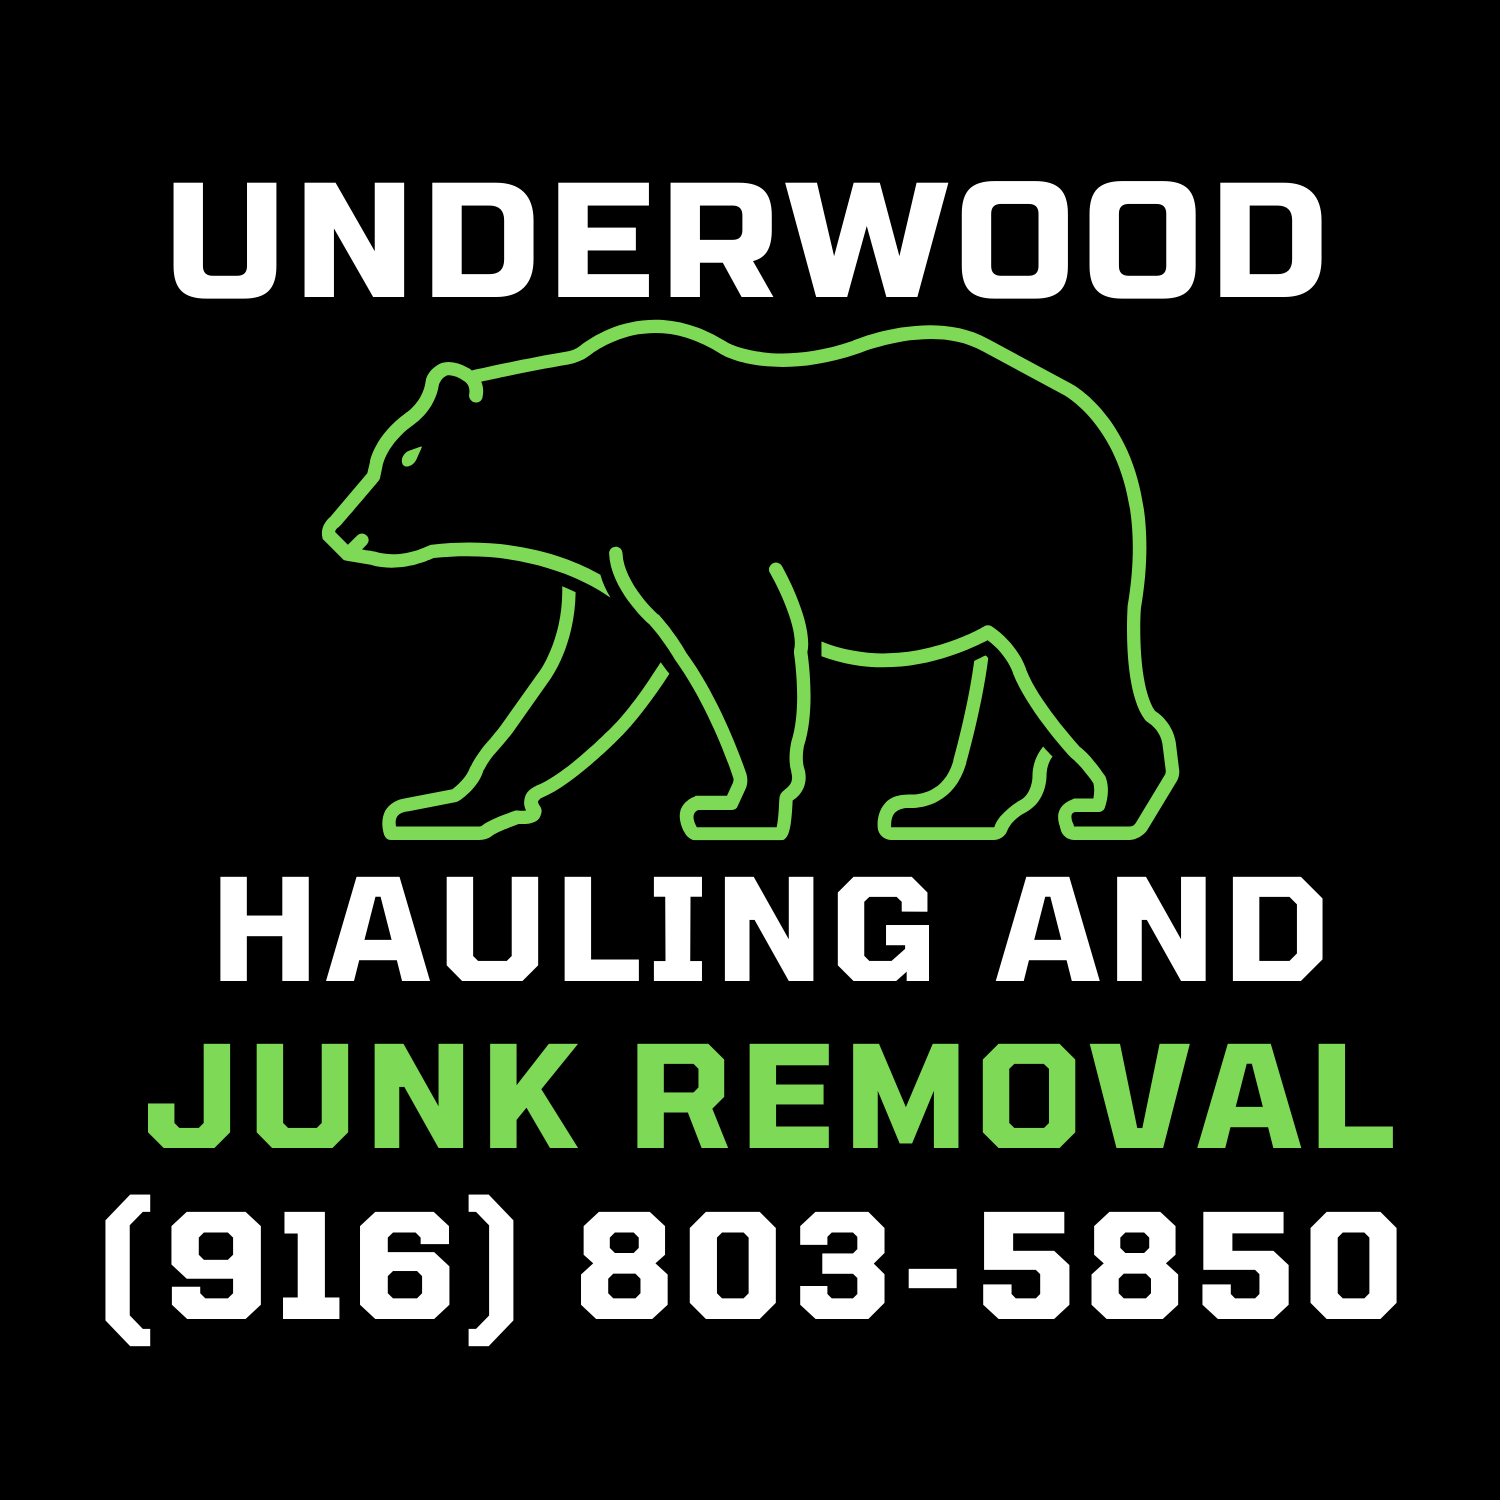 Underwood Hauling and Junk Removal logo - July 16, 2021